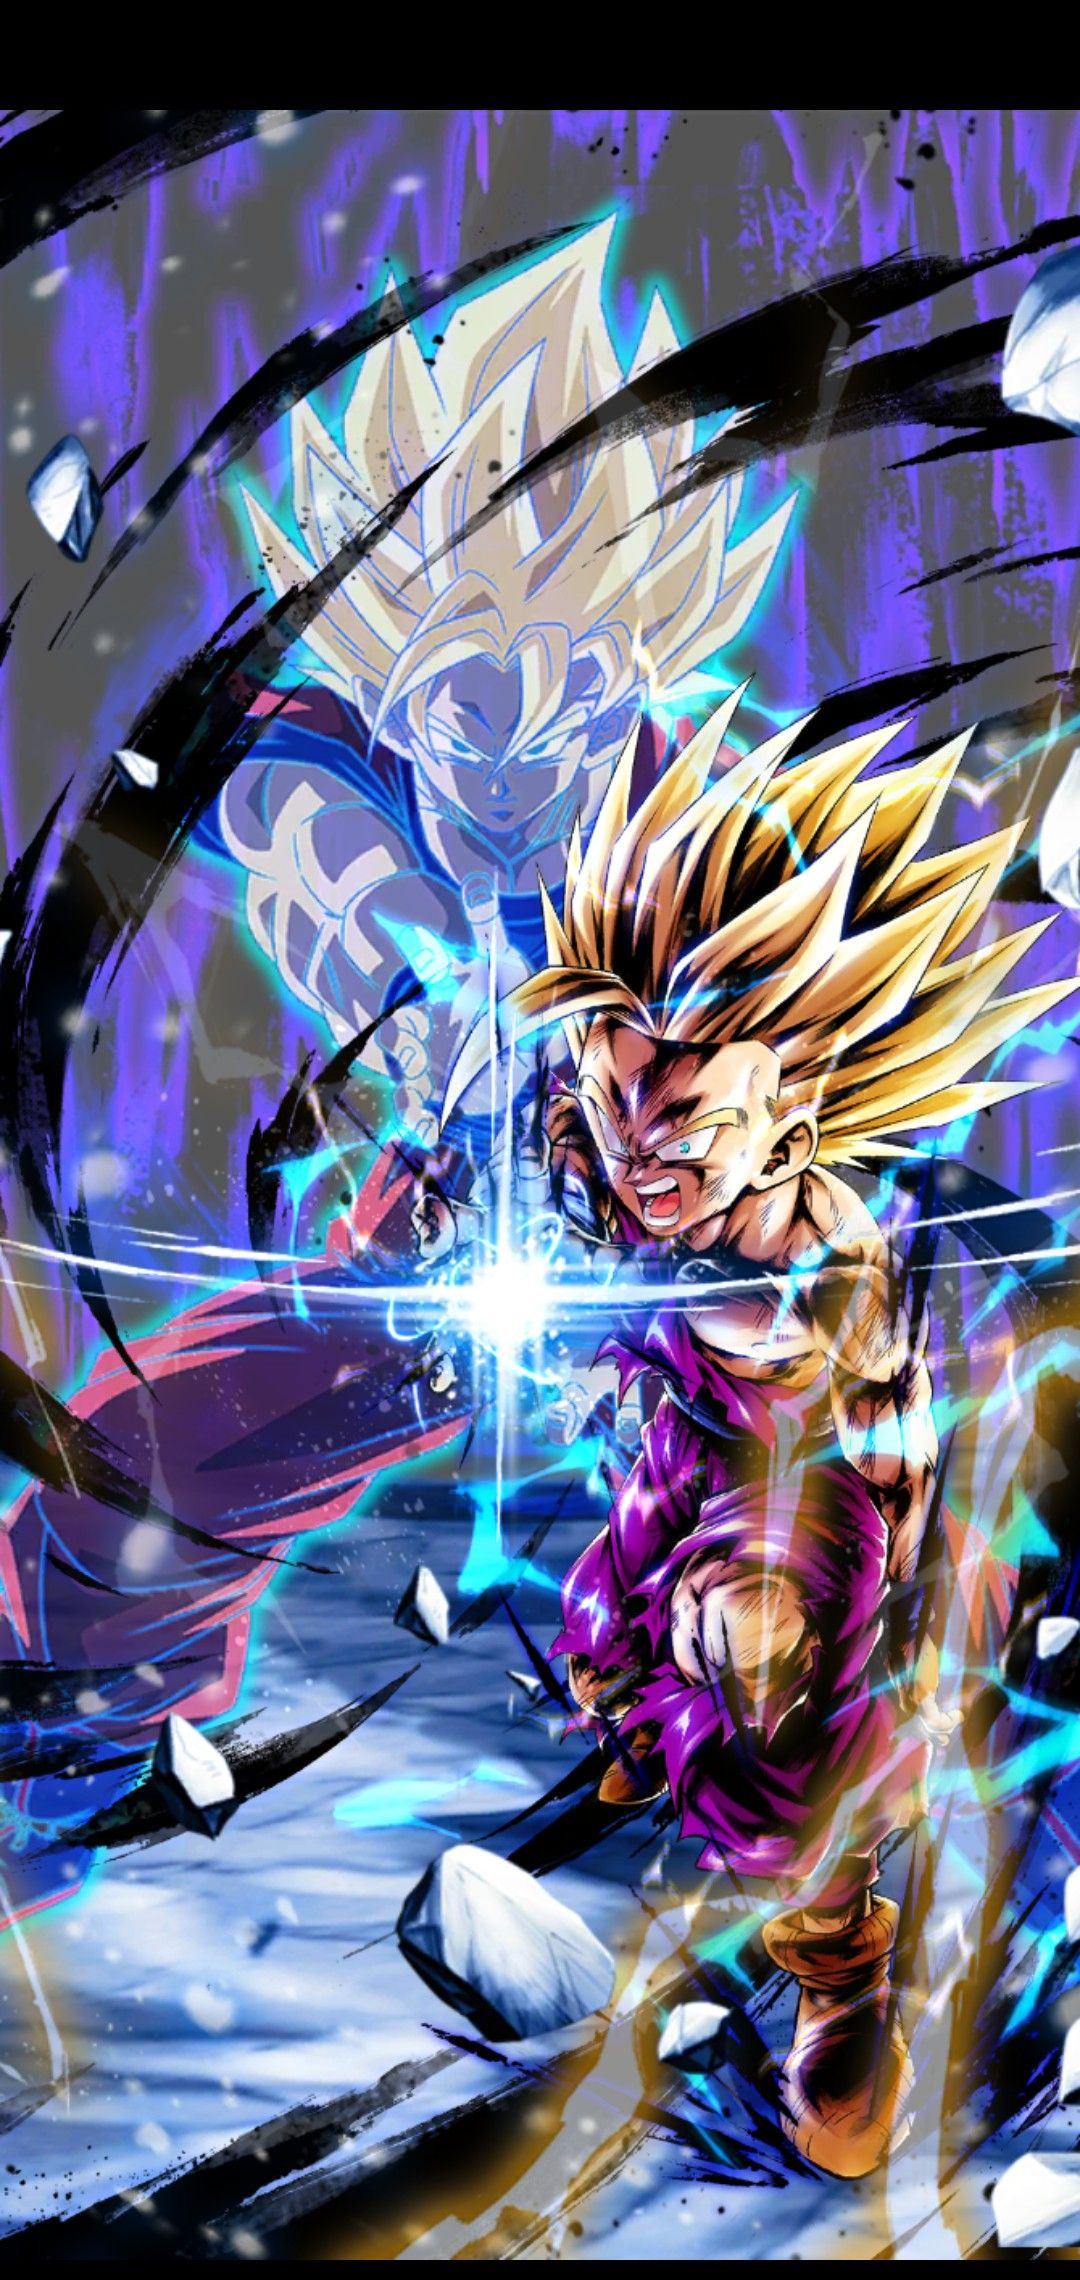 Super Saiyan 2 Gohan Anime Dragon Ball Super Dragon Ball Goku